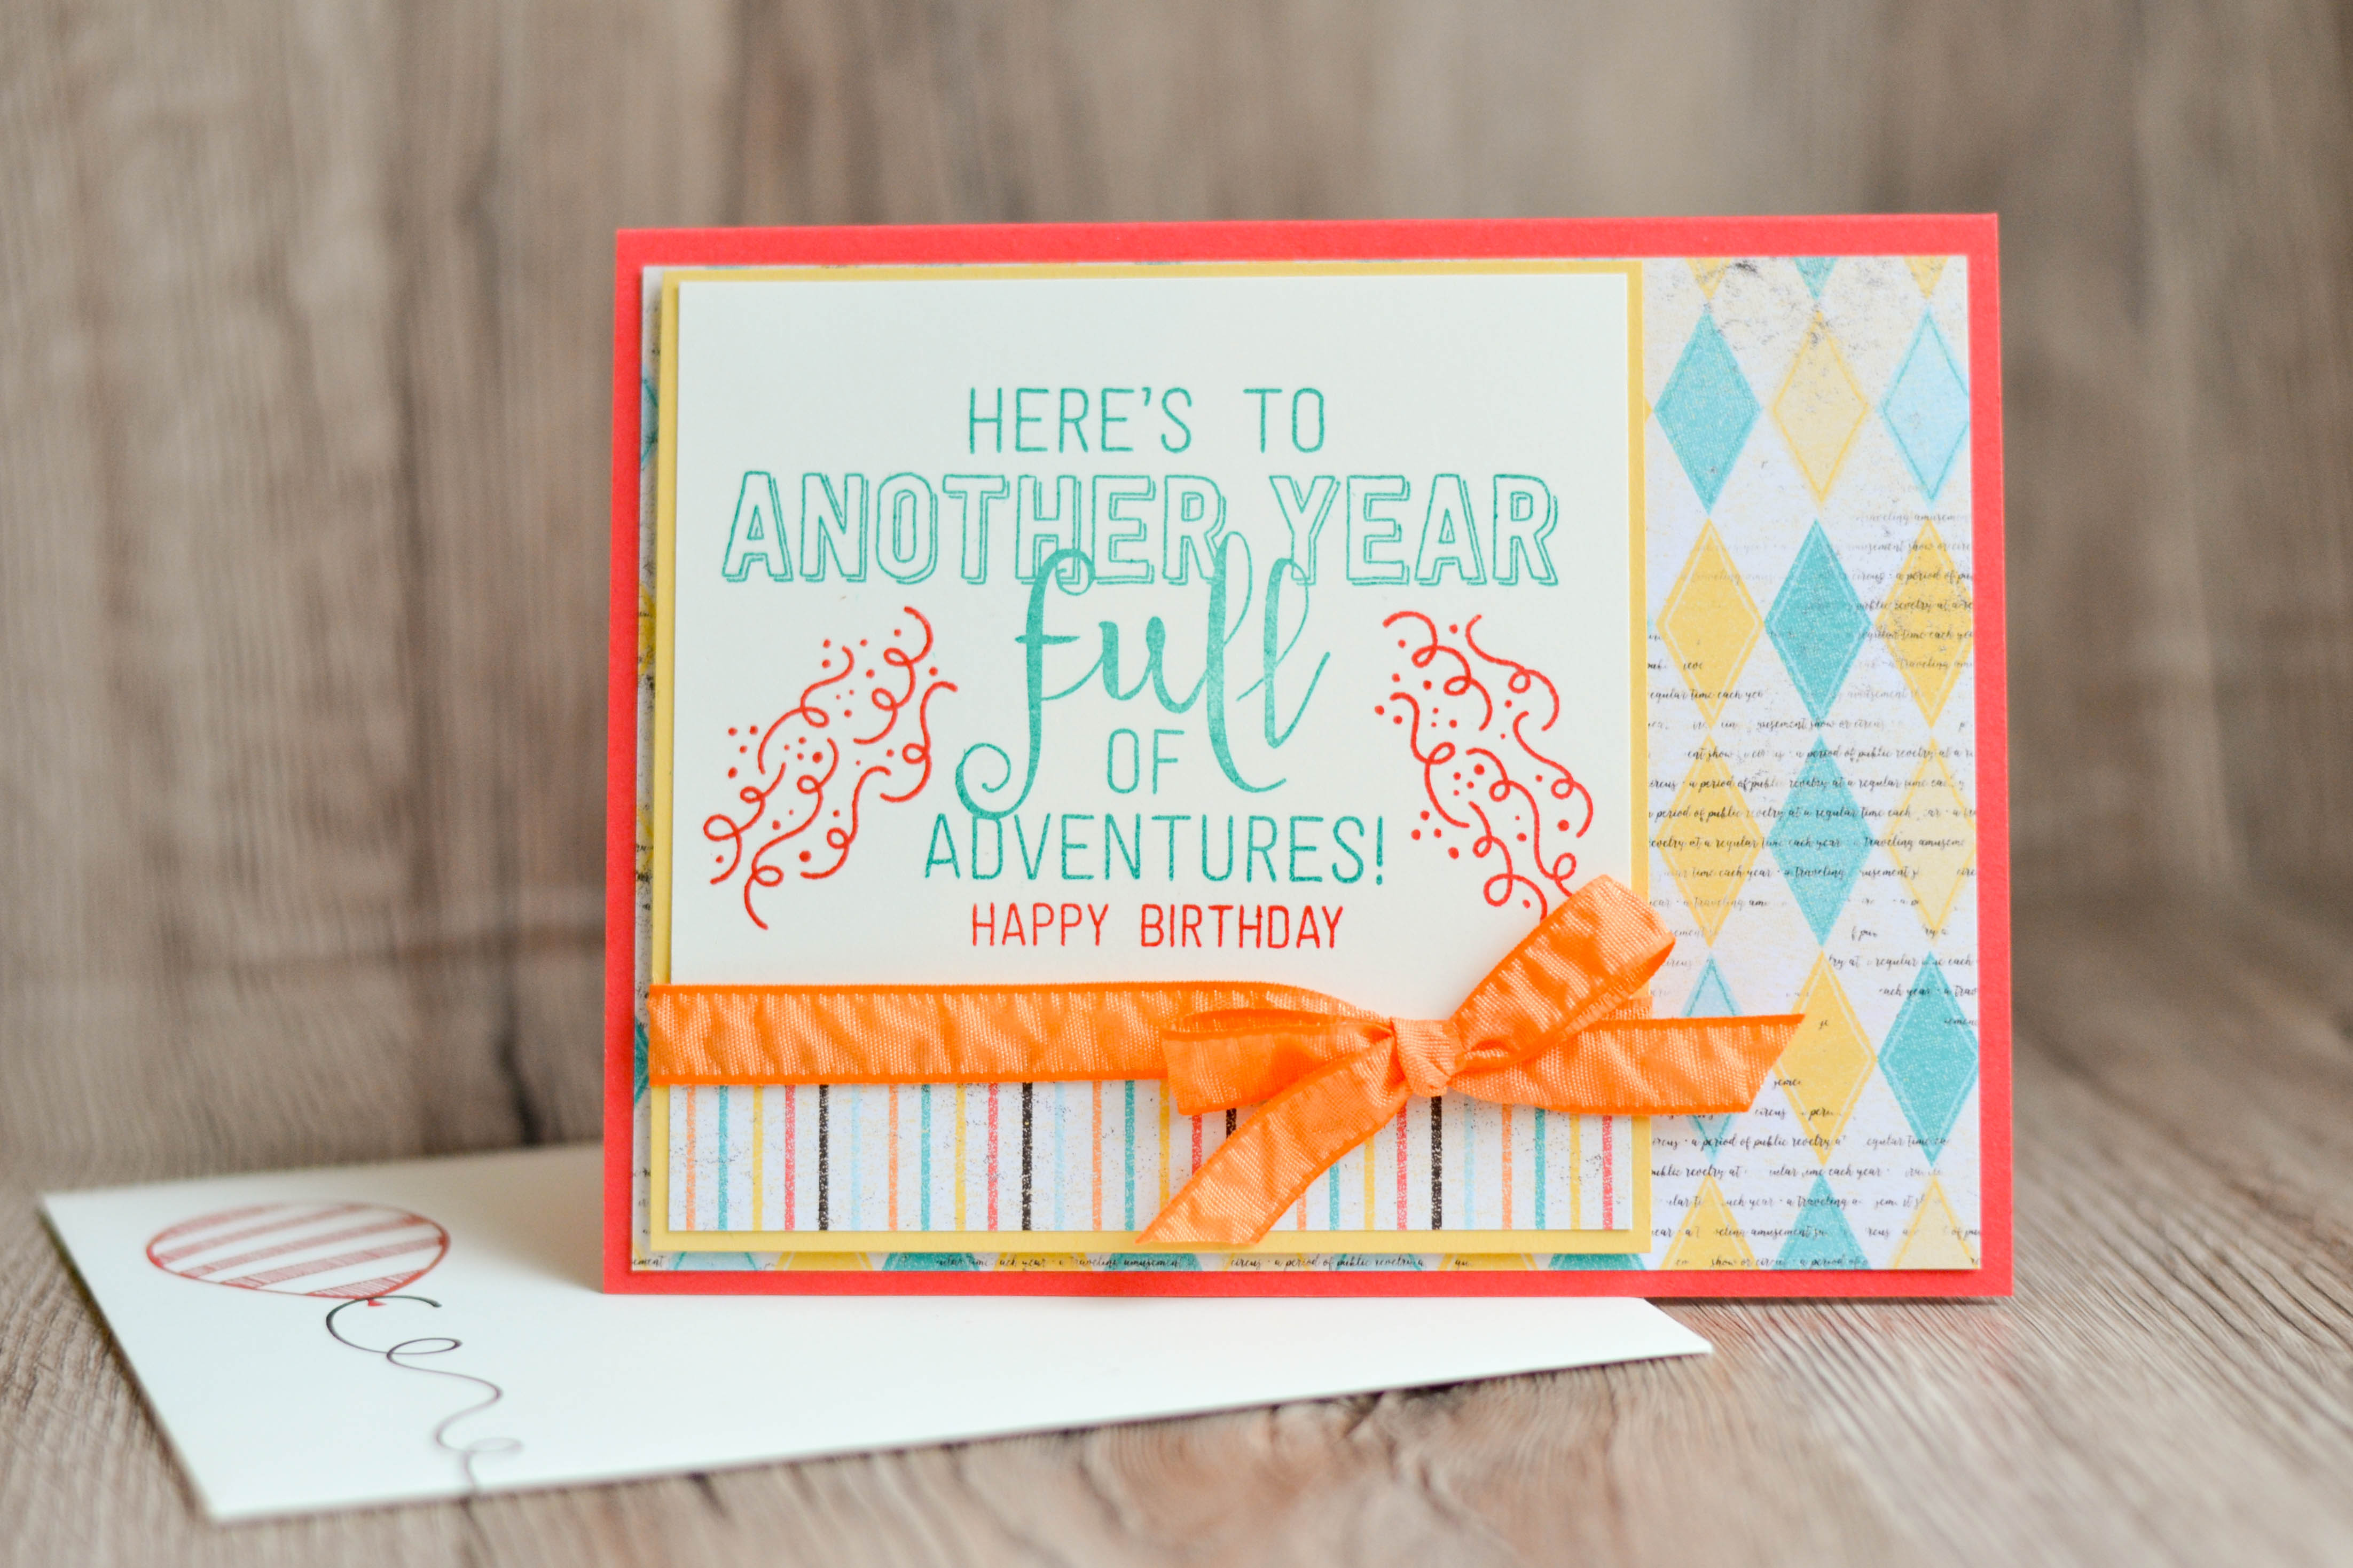 Quick and easy birthday card a new ink on life i try to keep the kids cards relatively simple because lets face it its not like 9 and 10 year olds really look at the card anywaylol bookmarktalkfo Images